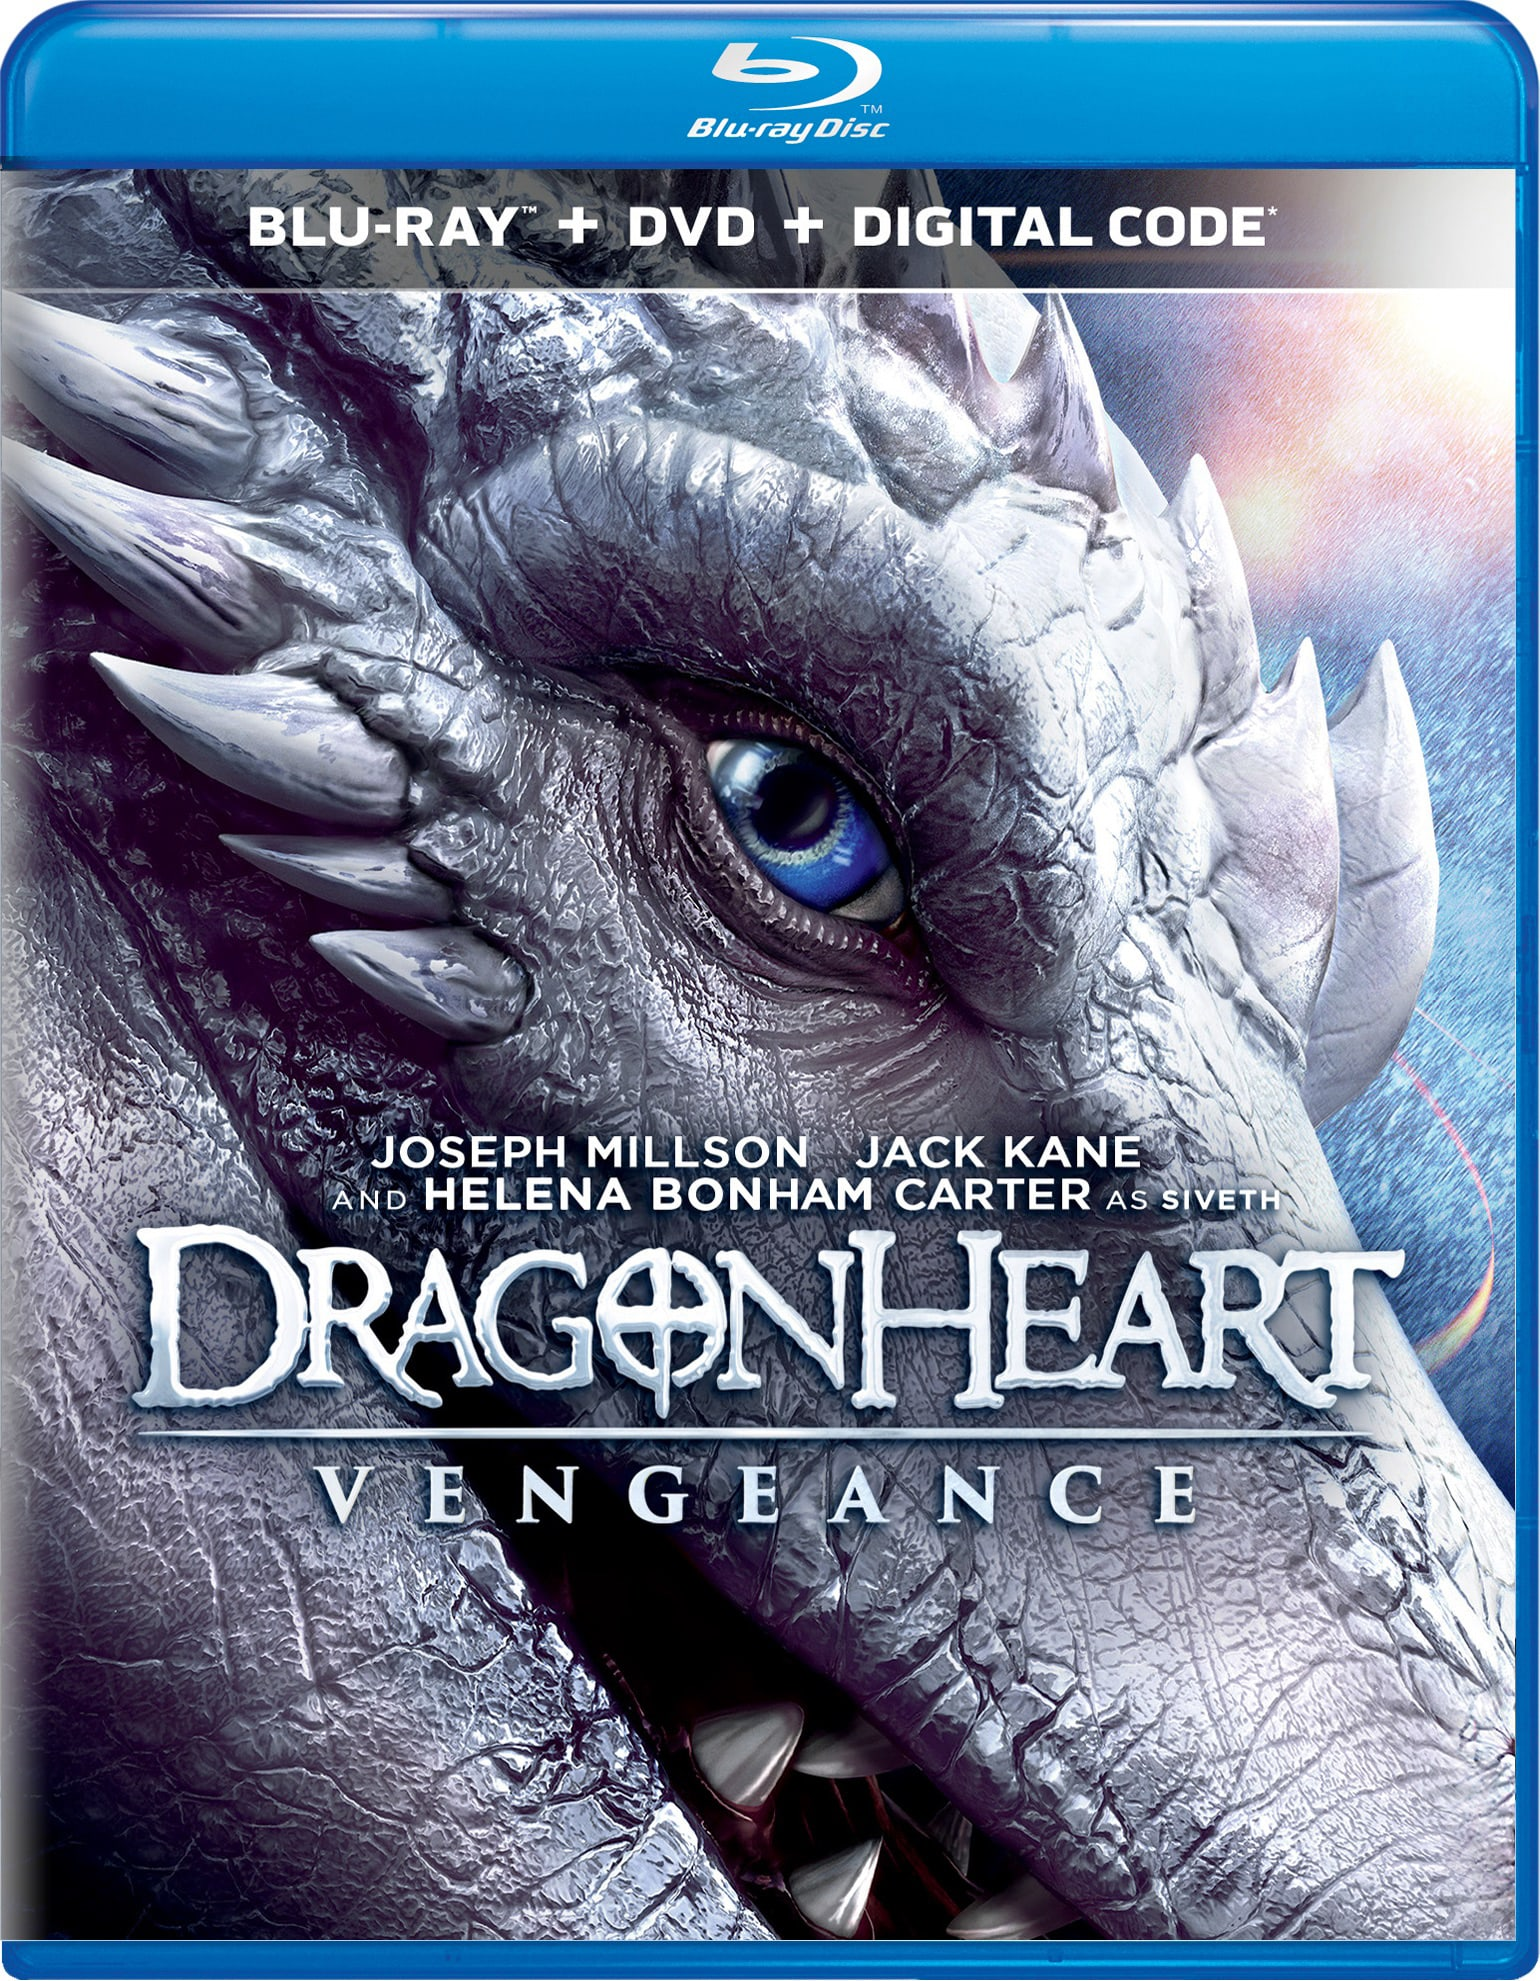 Dragonheart: Vengeance (DVD + Digital) [Blu-ray]